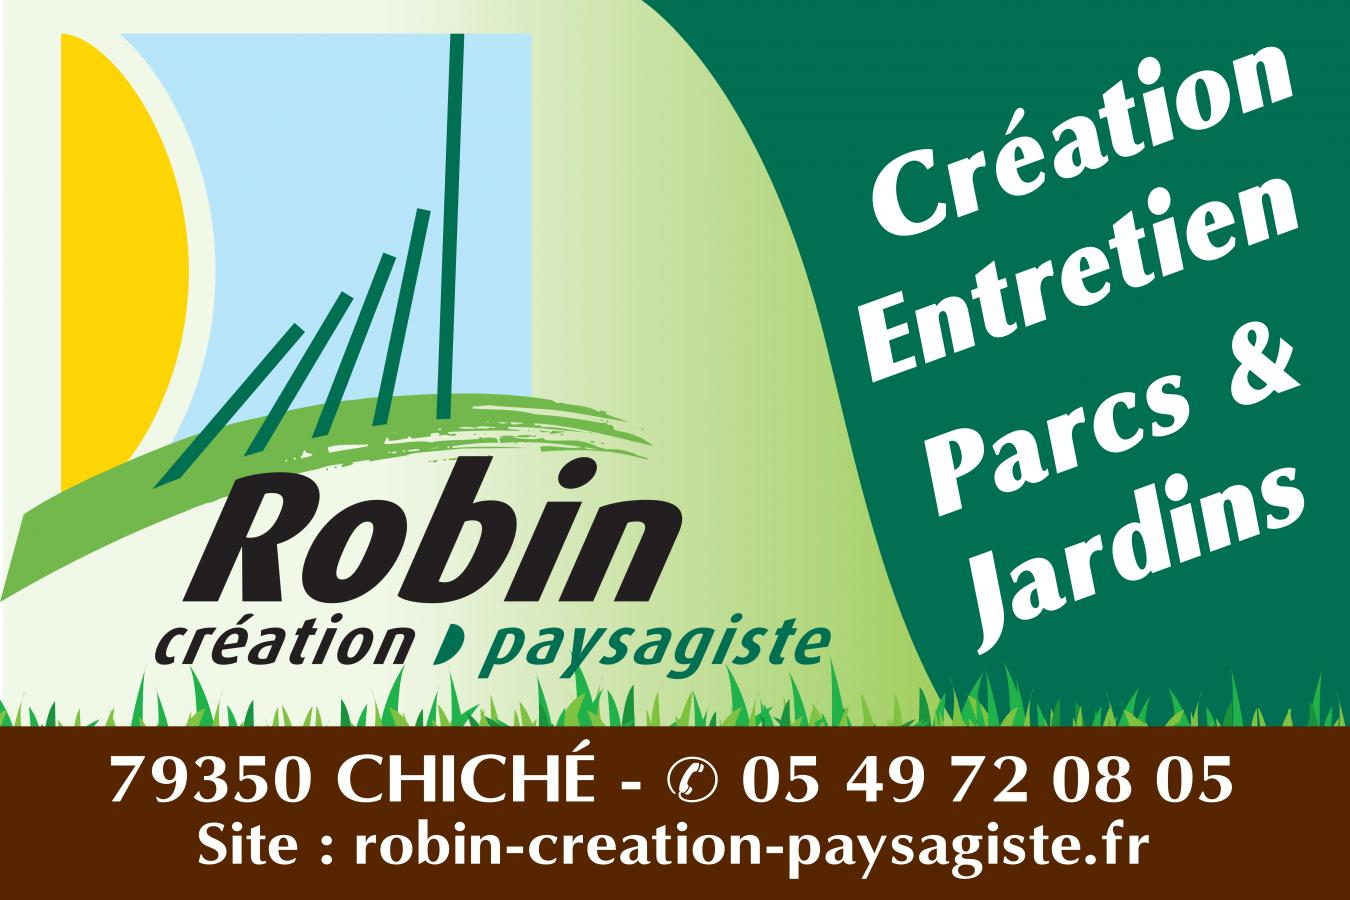 ROBIN CREATION